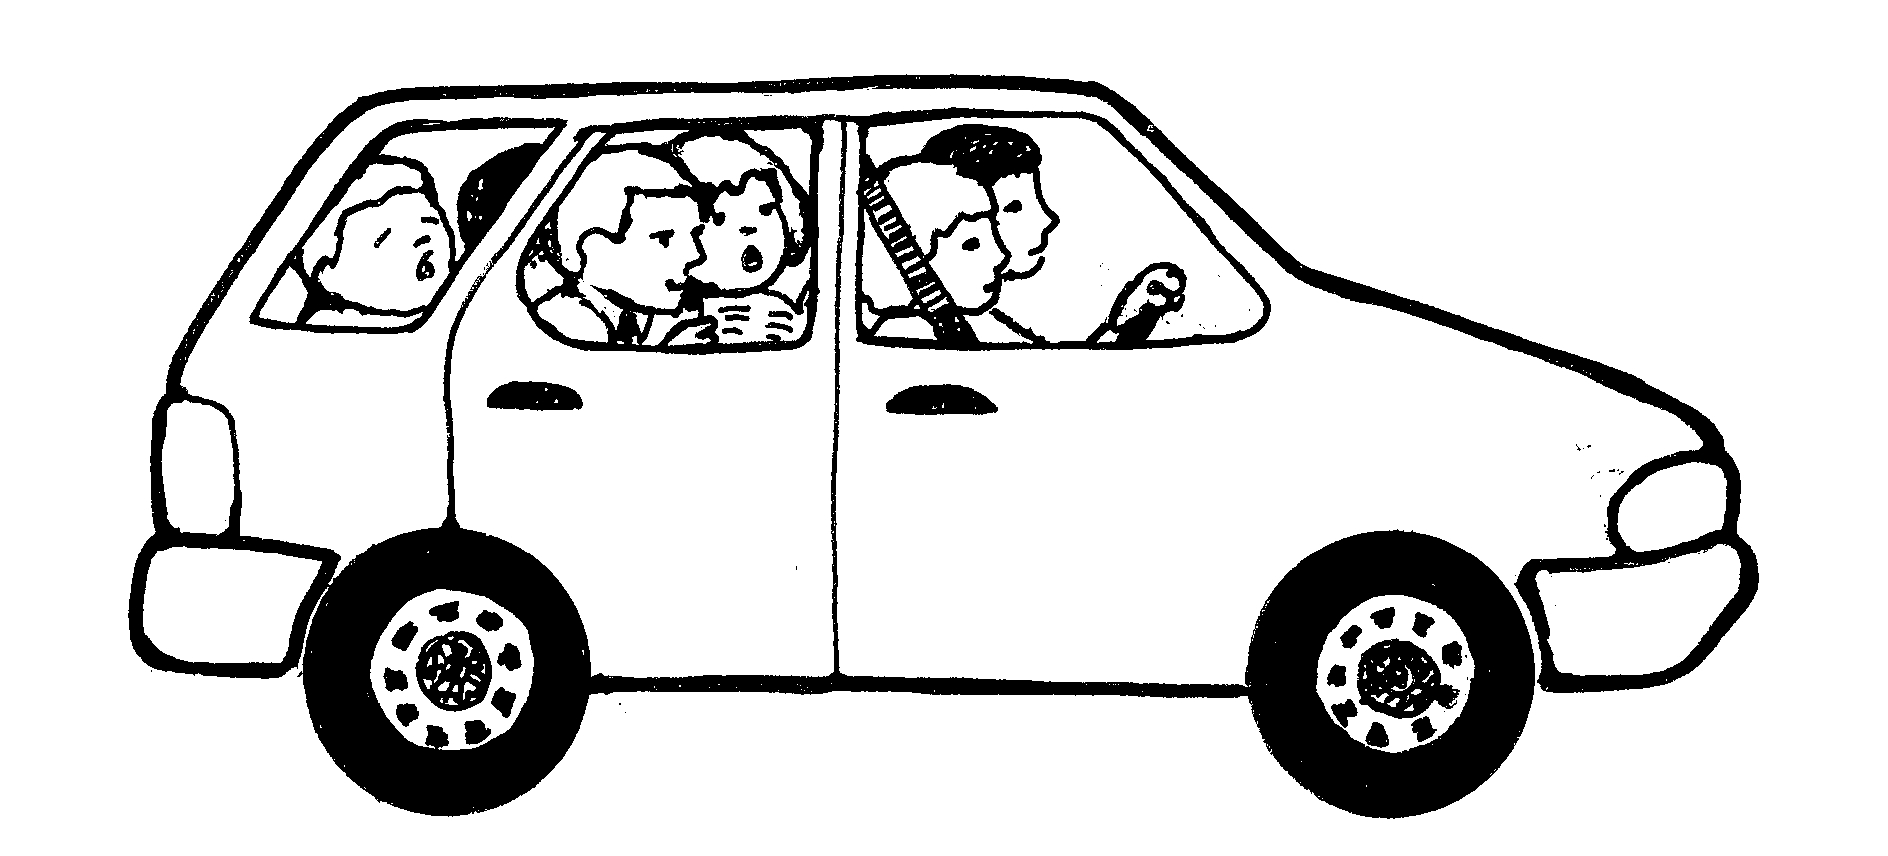 Best Car Clipart Black And White #13190 - Clipartion.com